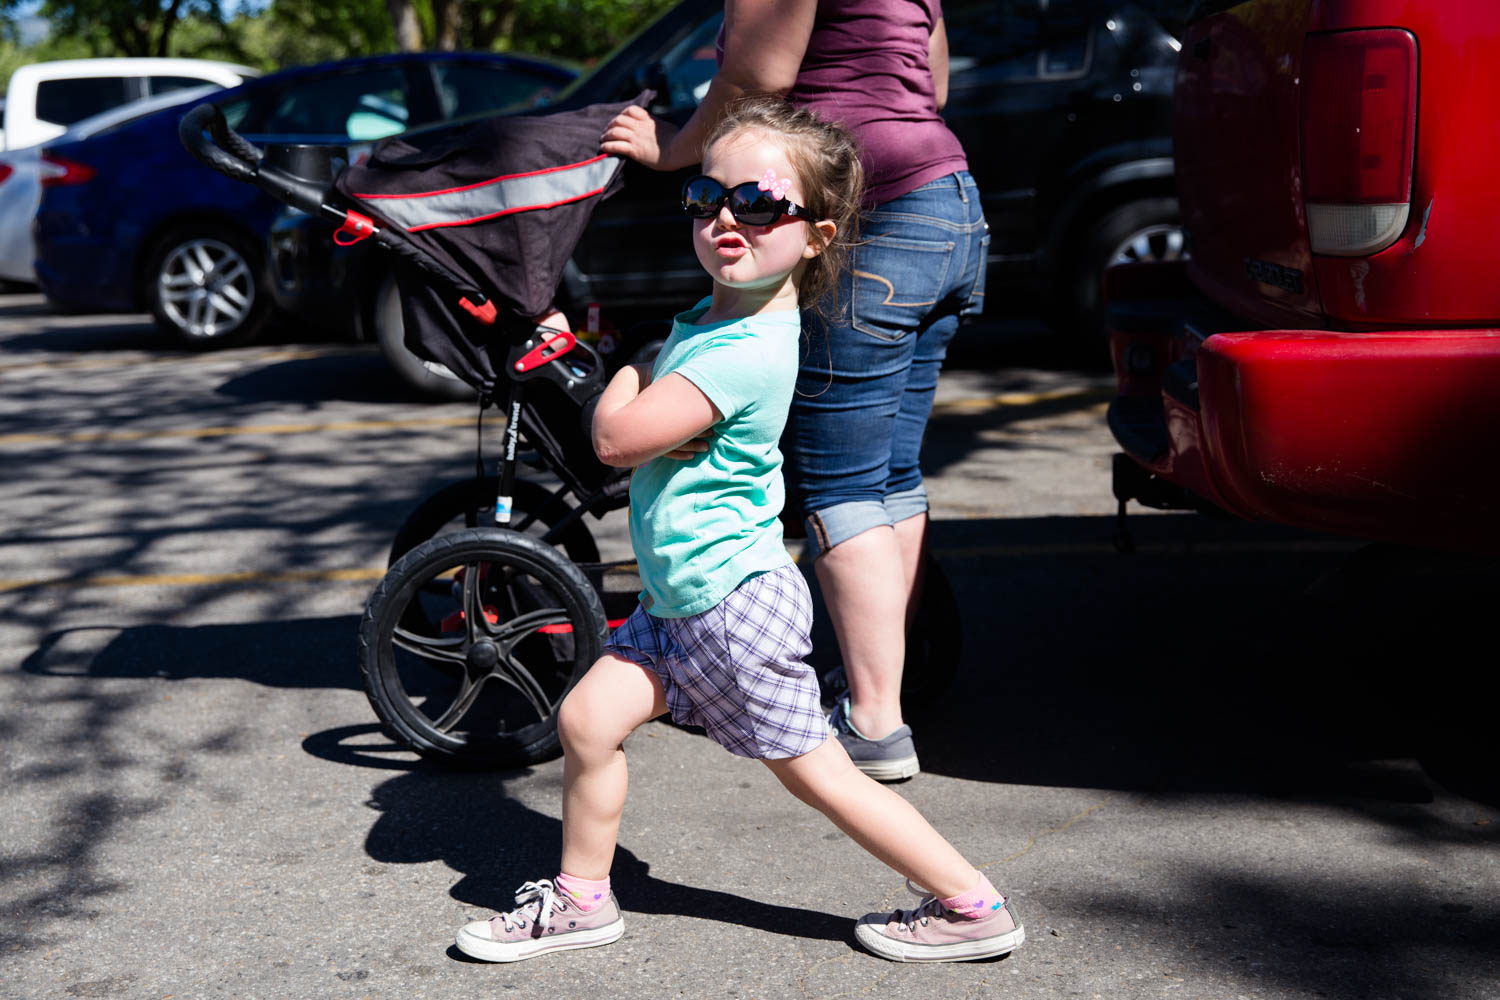 Little girl walking with determination as she goes down the street from Camelsback Park to Hyde Park in Boise on their way to the Goody's Soda fountain